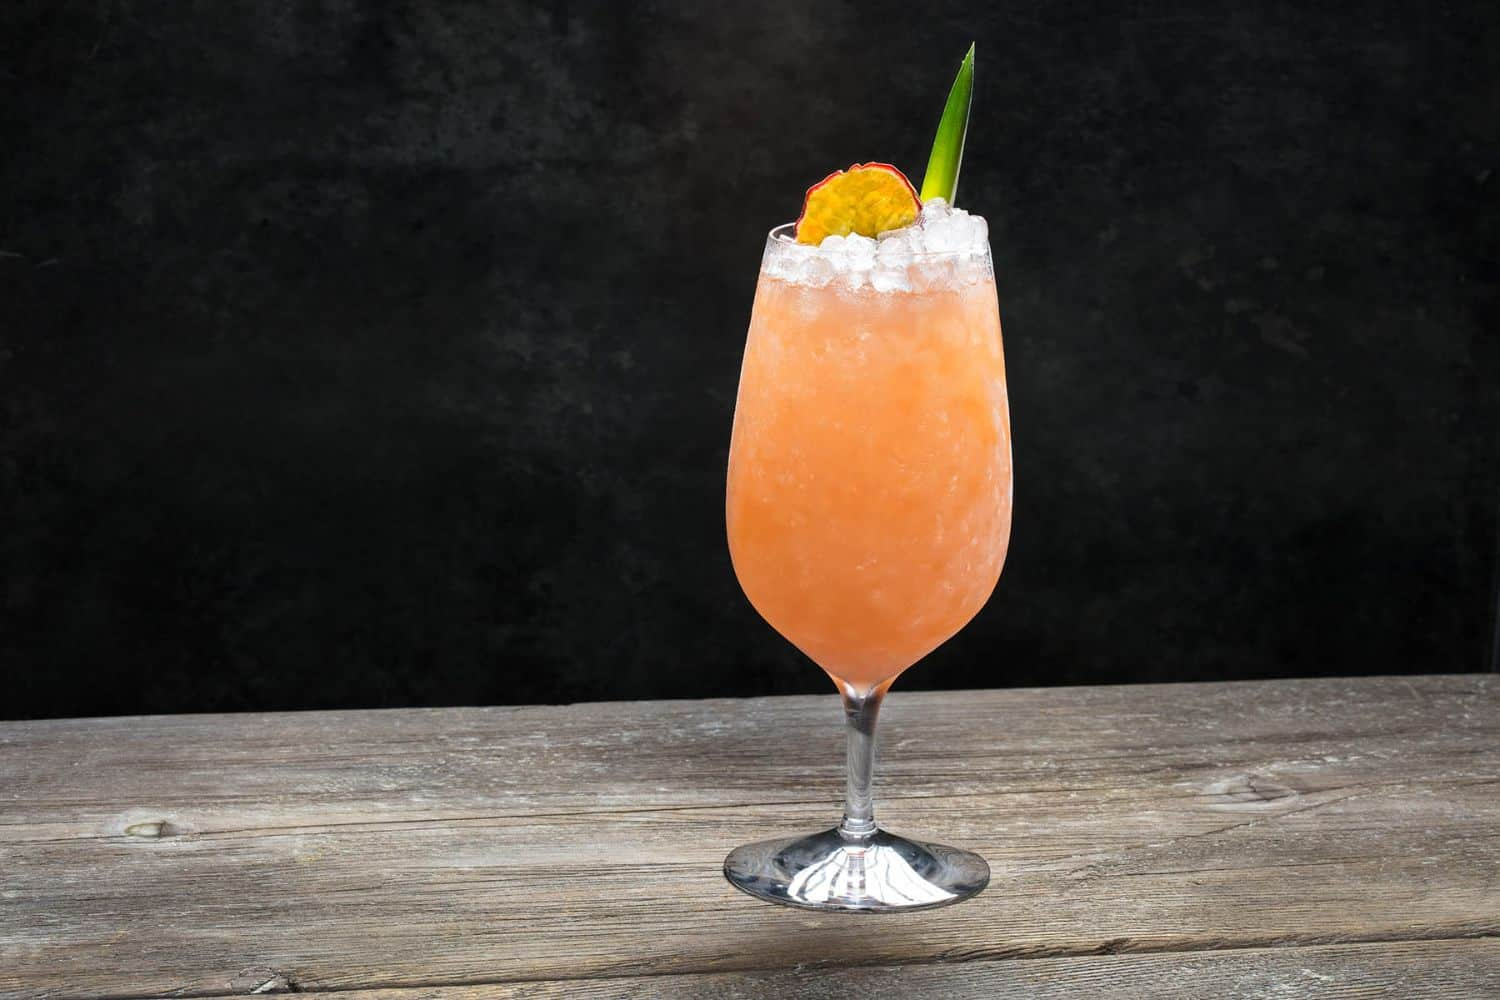 This orange colored passion fruit pineapple hurricane is served over crushed ice.